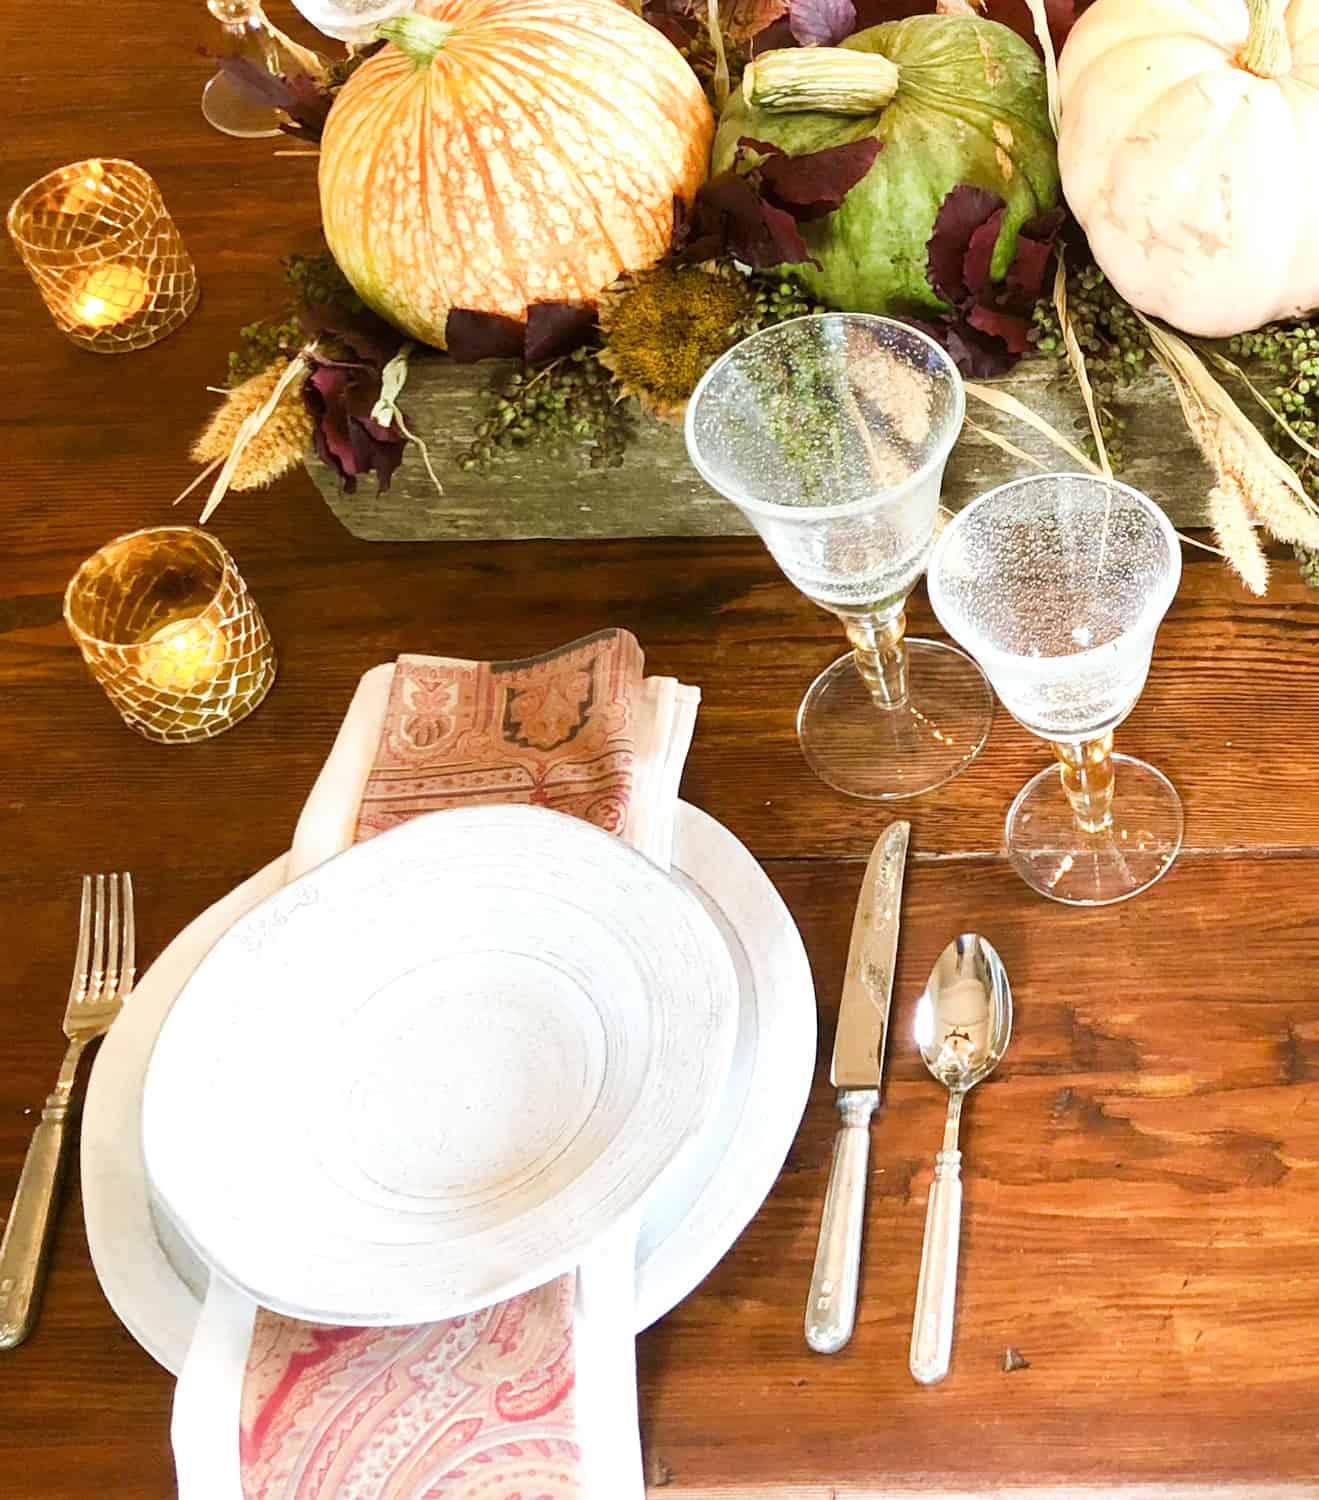 tablescape with pumpkins, sunflowers, privet, wheat